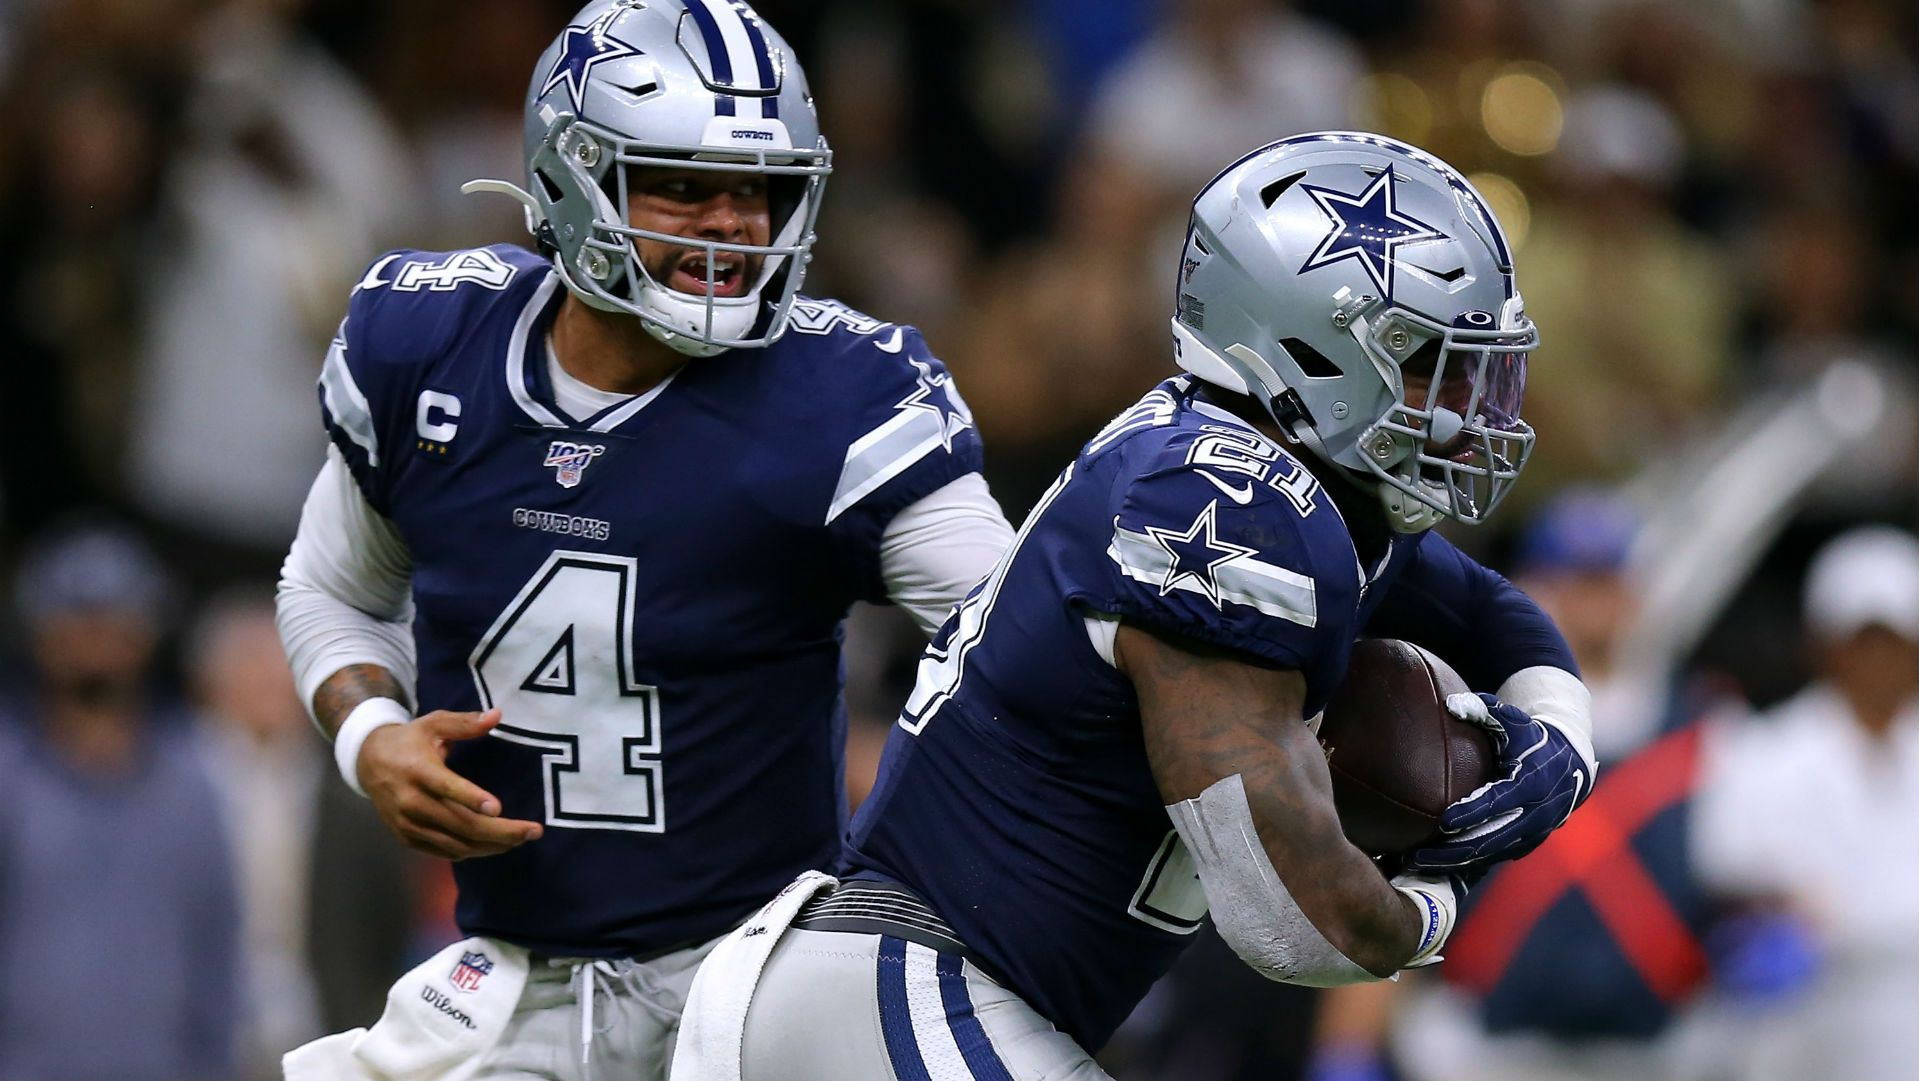 NFL schedule Week 5 What games are on today? TV channels